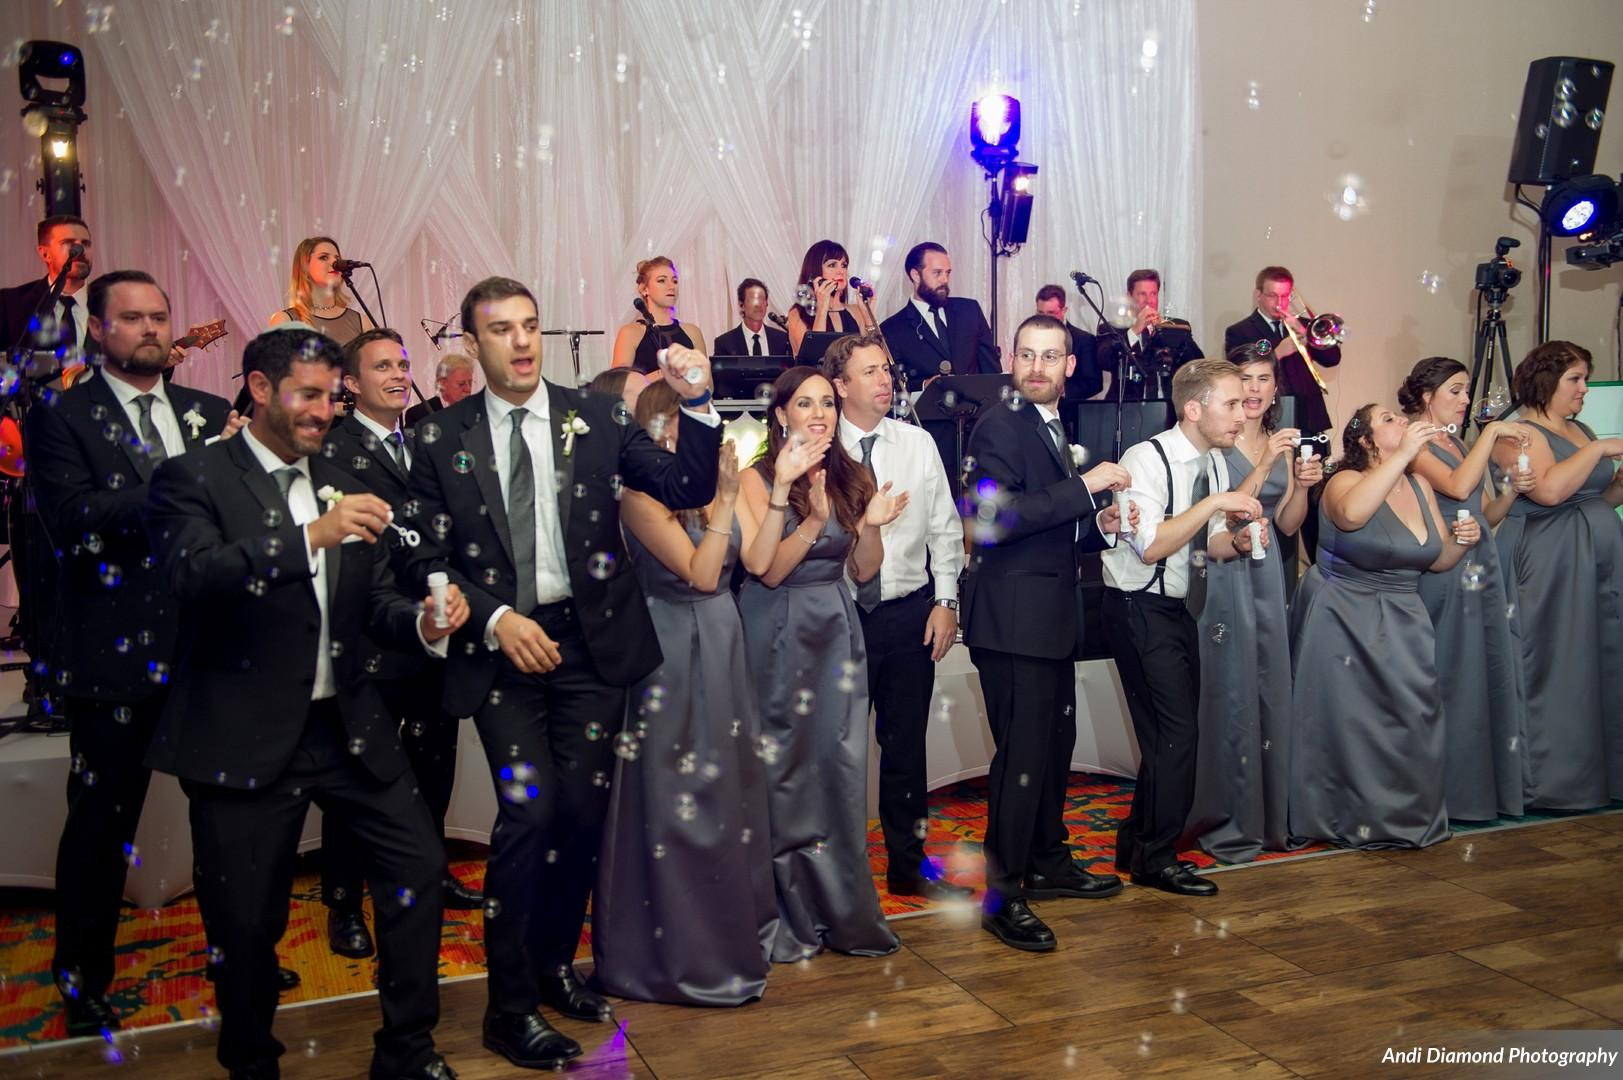 The wedding party showered the dance floor in bubbles during the first dance.